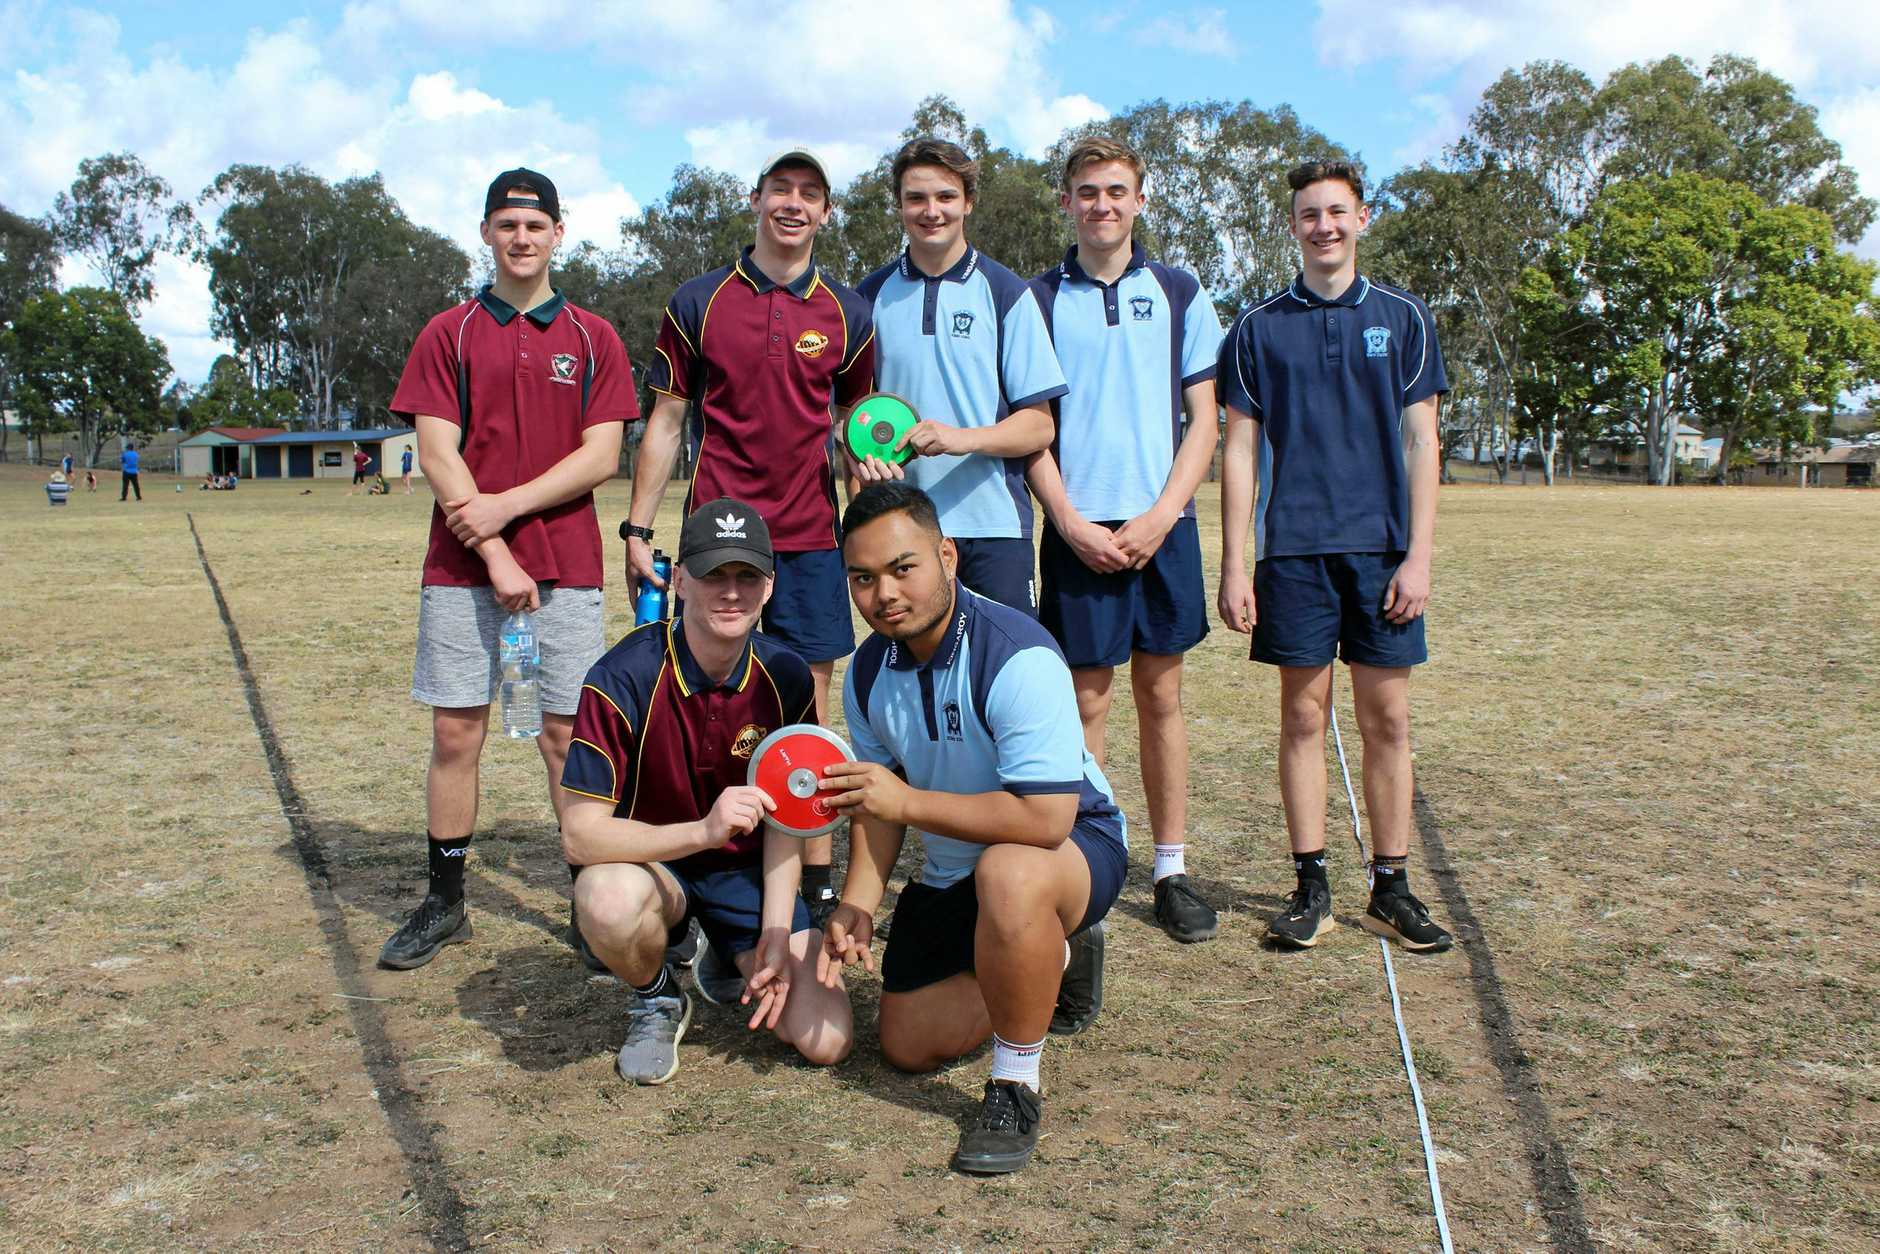 Patrick Gentry and Ryan Macasaet (front) and Jesse Mould, Mathew Early, Declan Hutchinson, Jaxson Walters and Gordon Miners competed in the under-17 boys discus.